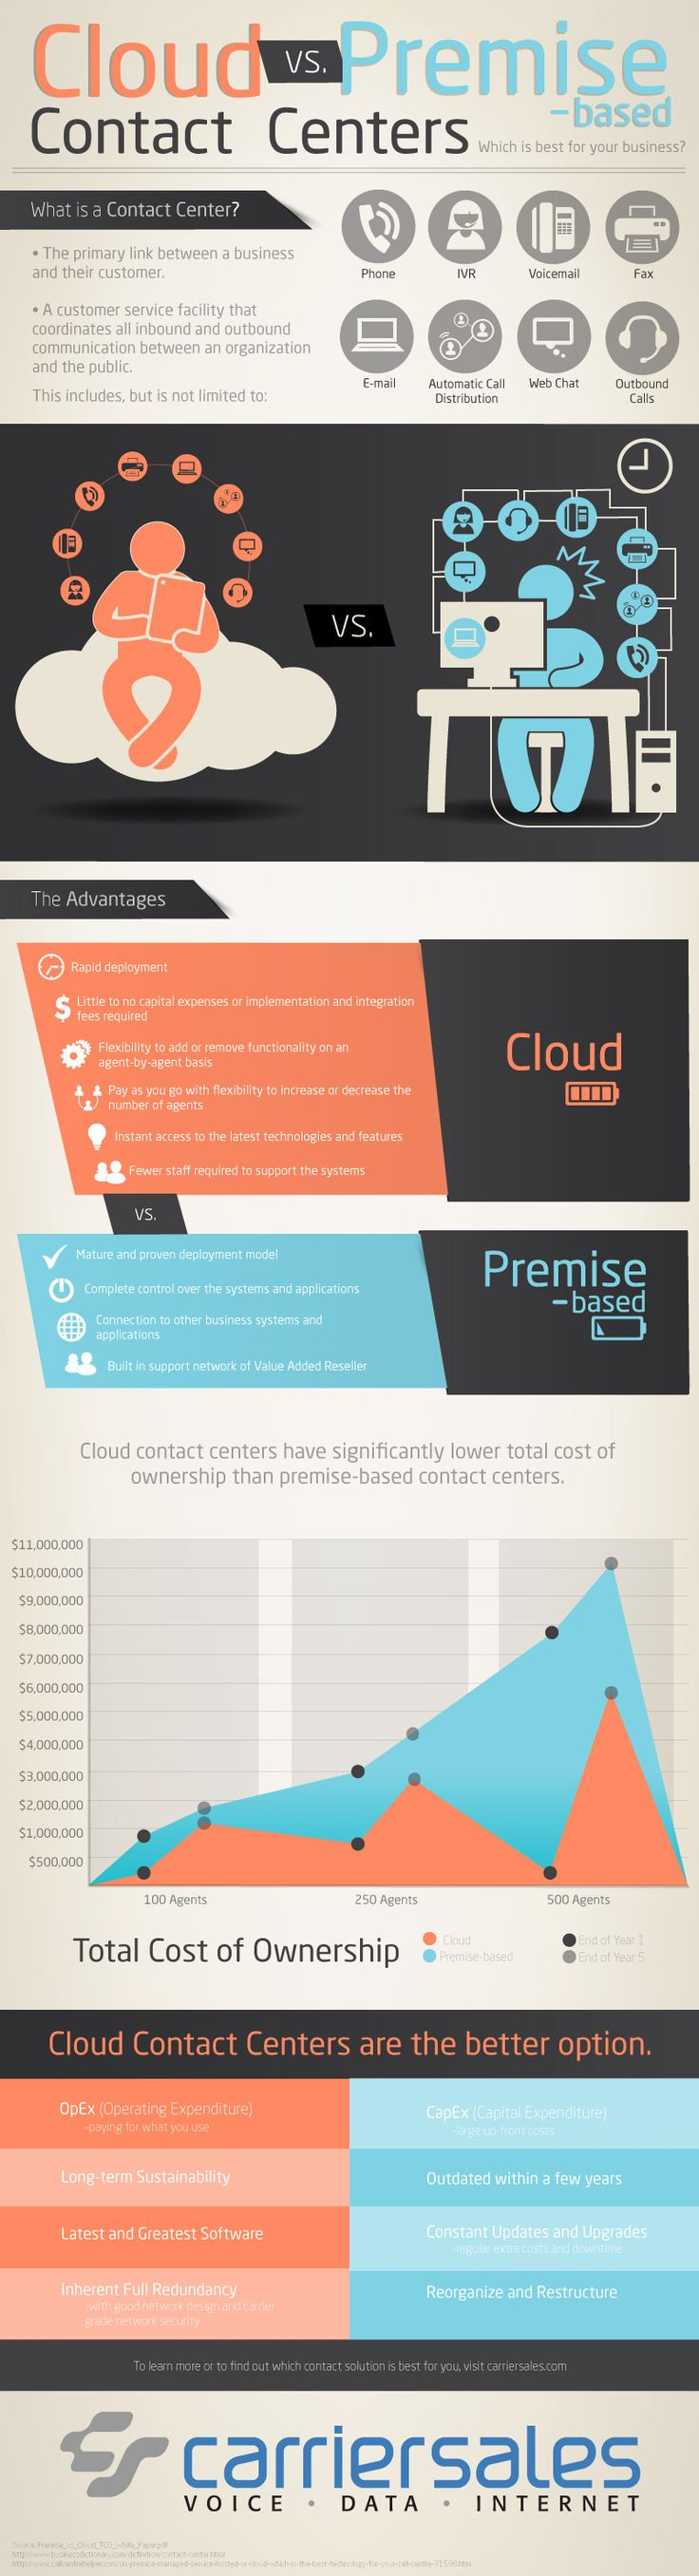 Cloud vs. Premise Based Contact Centers (infographic)